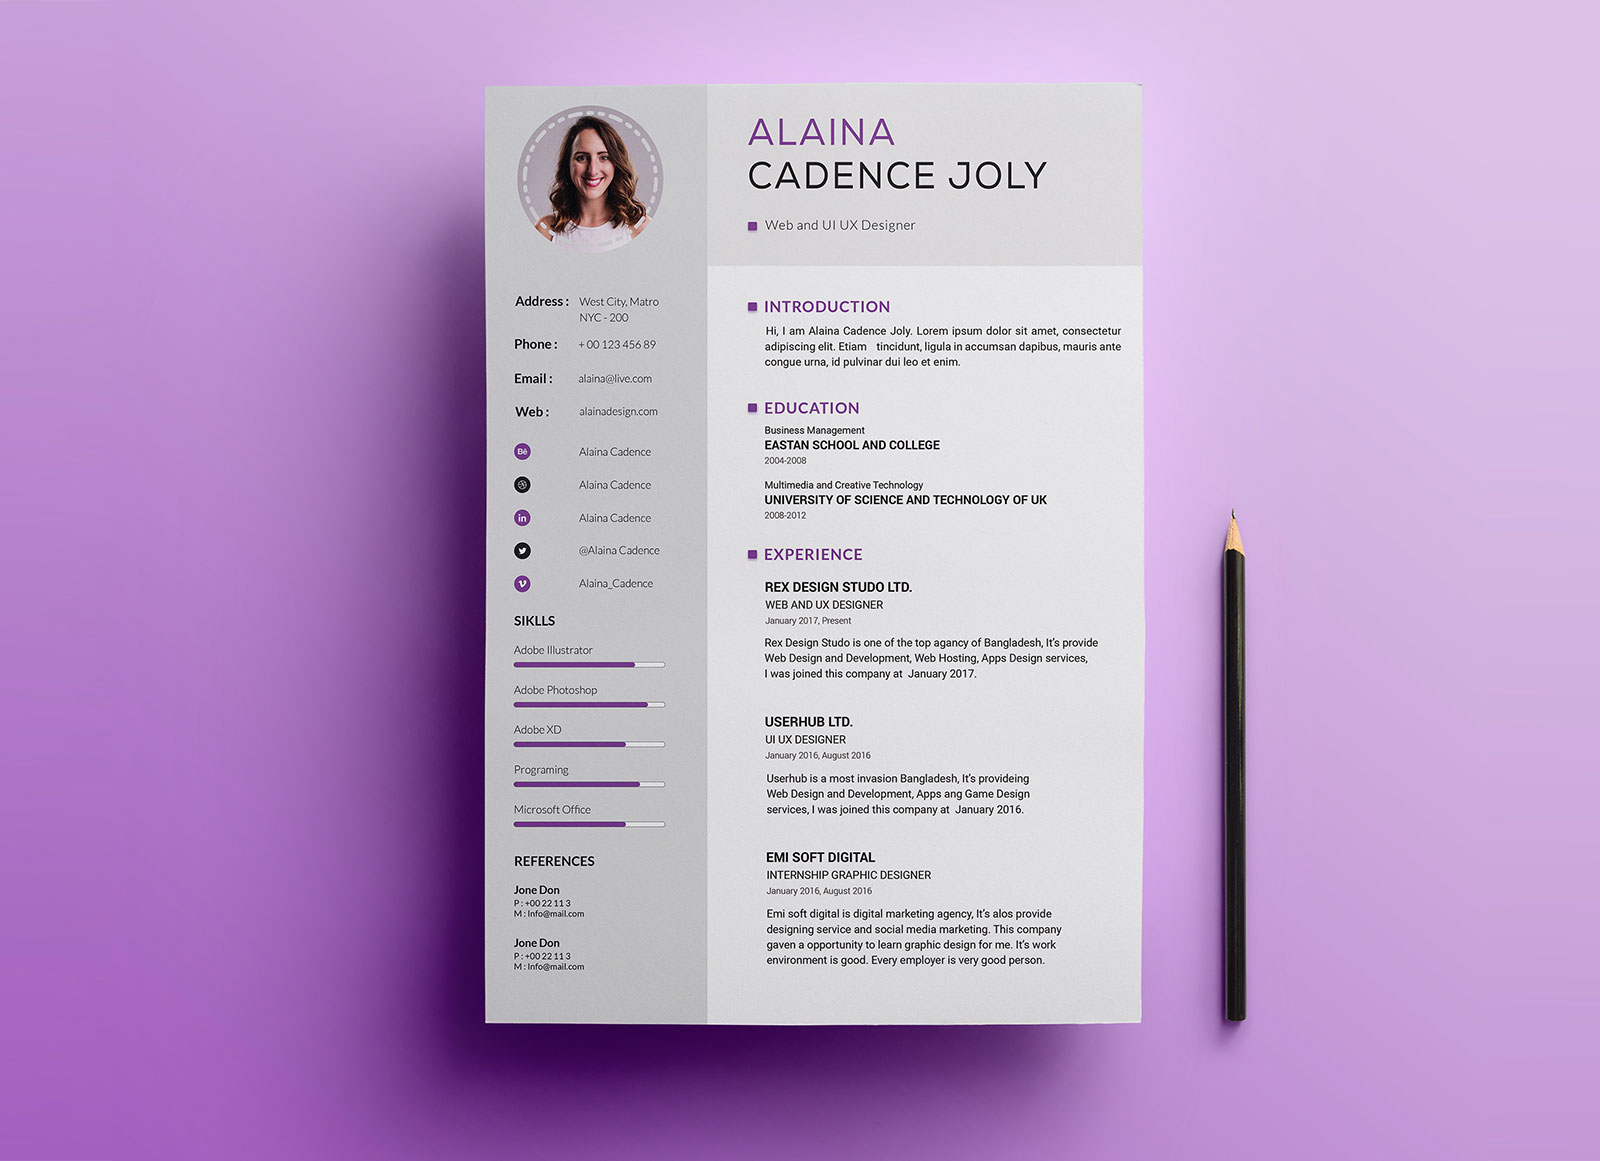 Free-Clean-&-Professional-Resume-With-Cover-Letter-PSD-1 - Copy